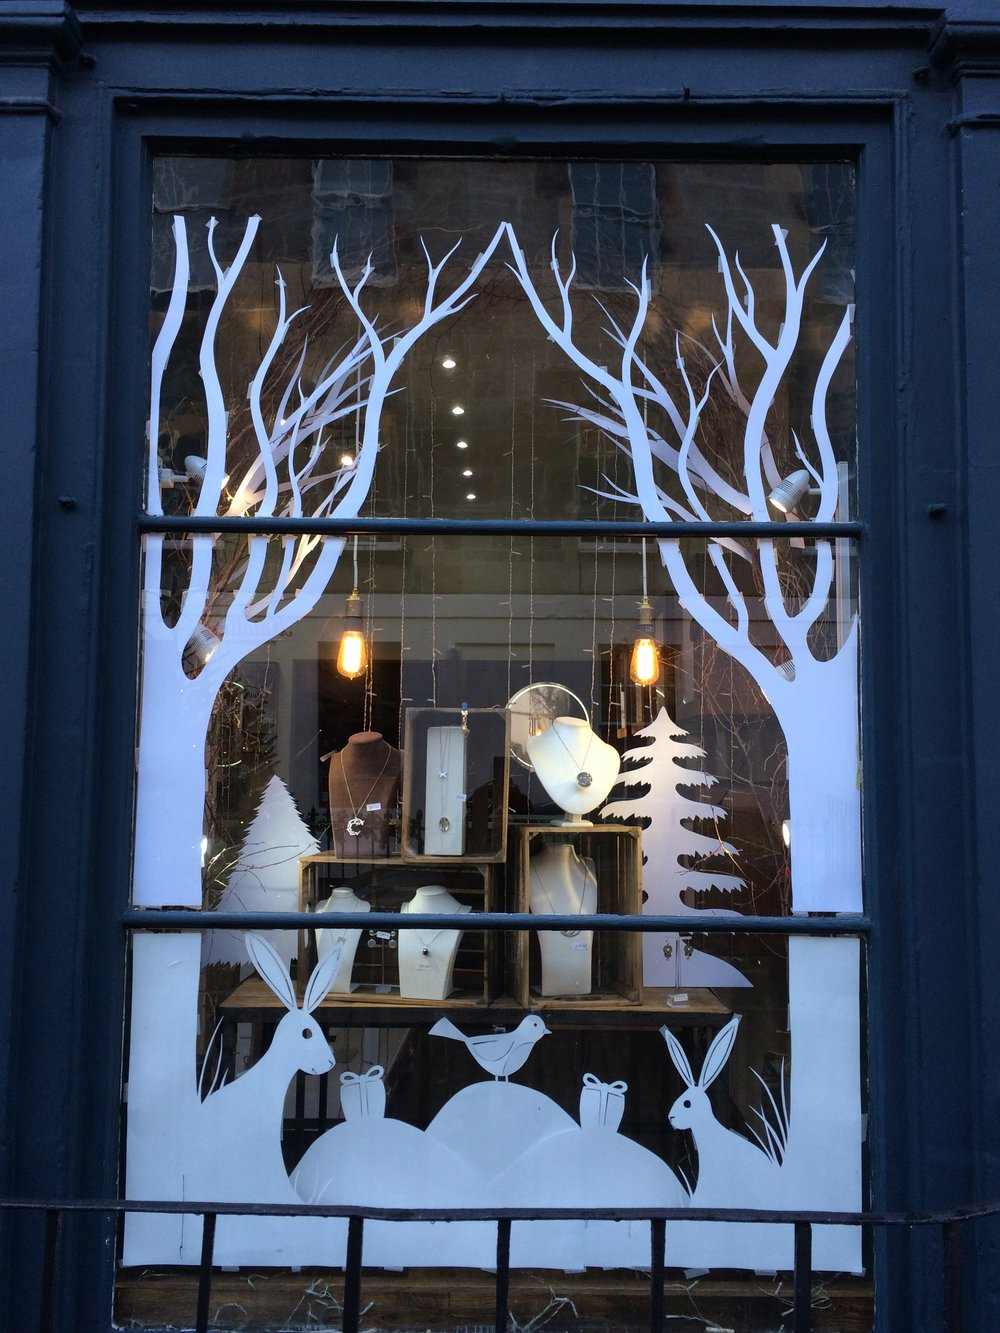 Winter Window 2016 at Lily Luna